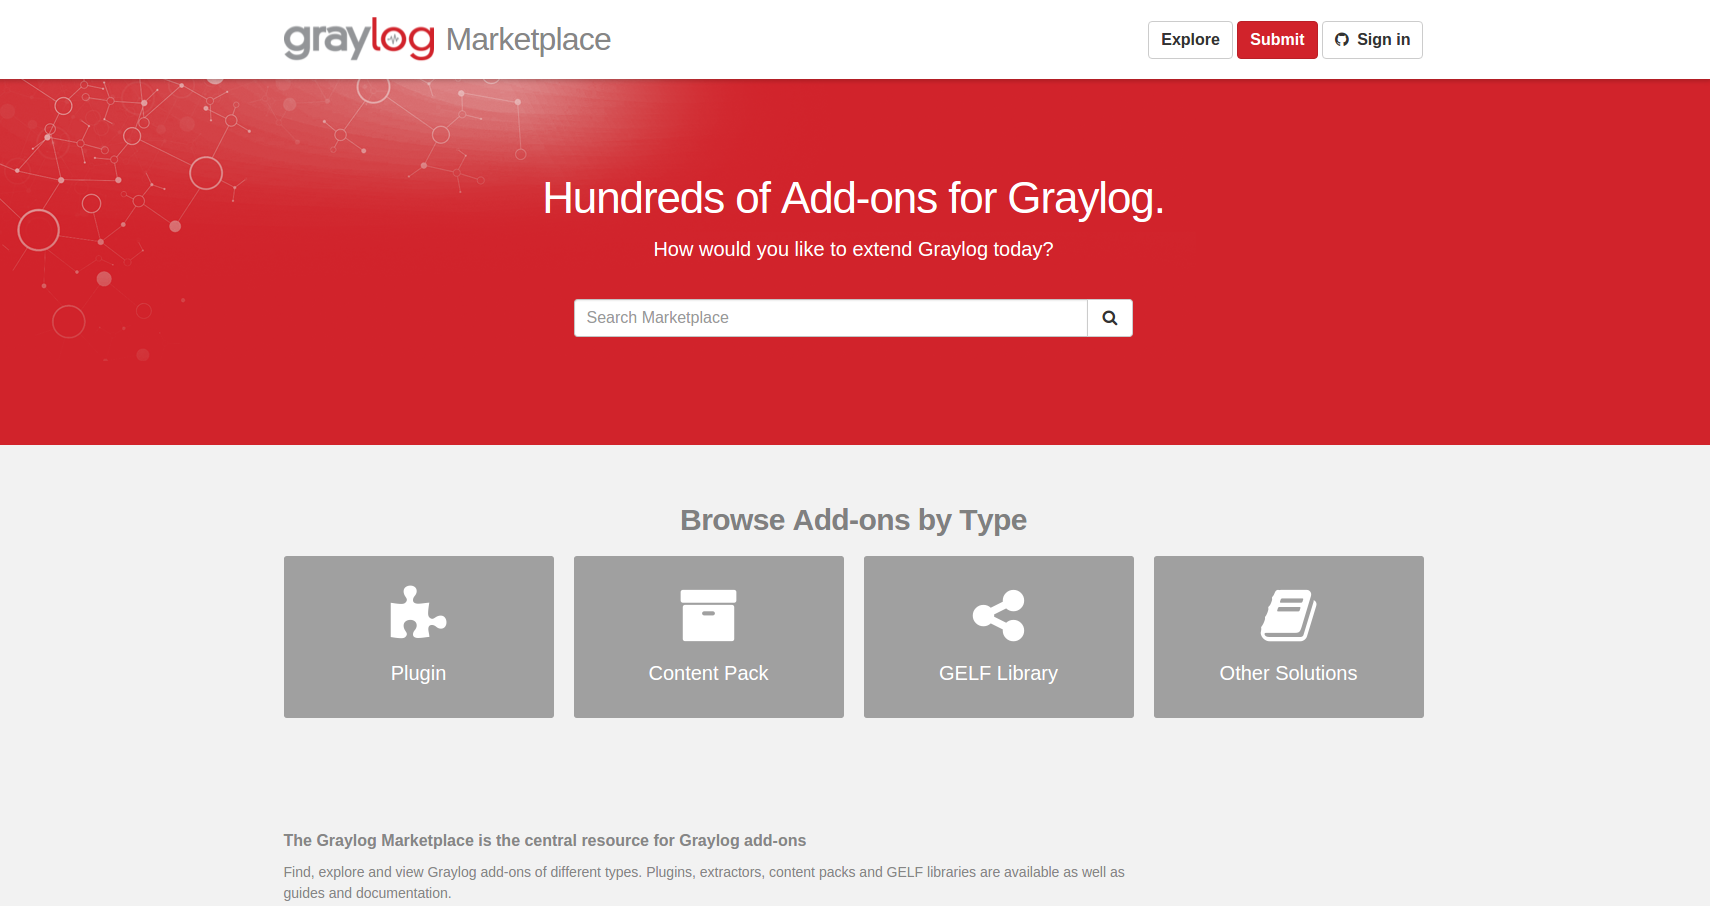 graylog_marketplace